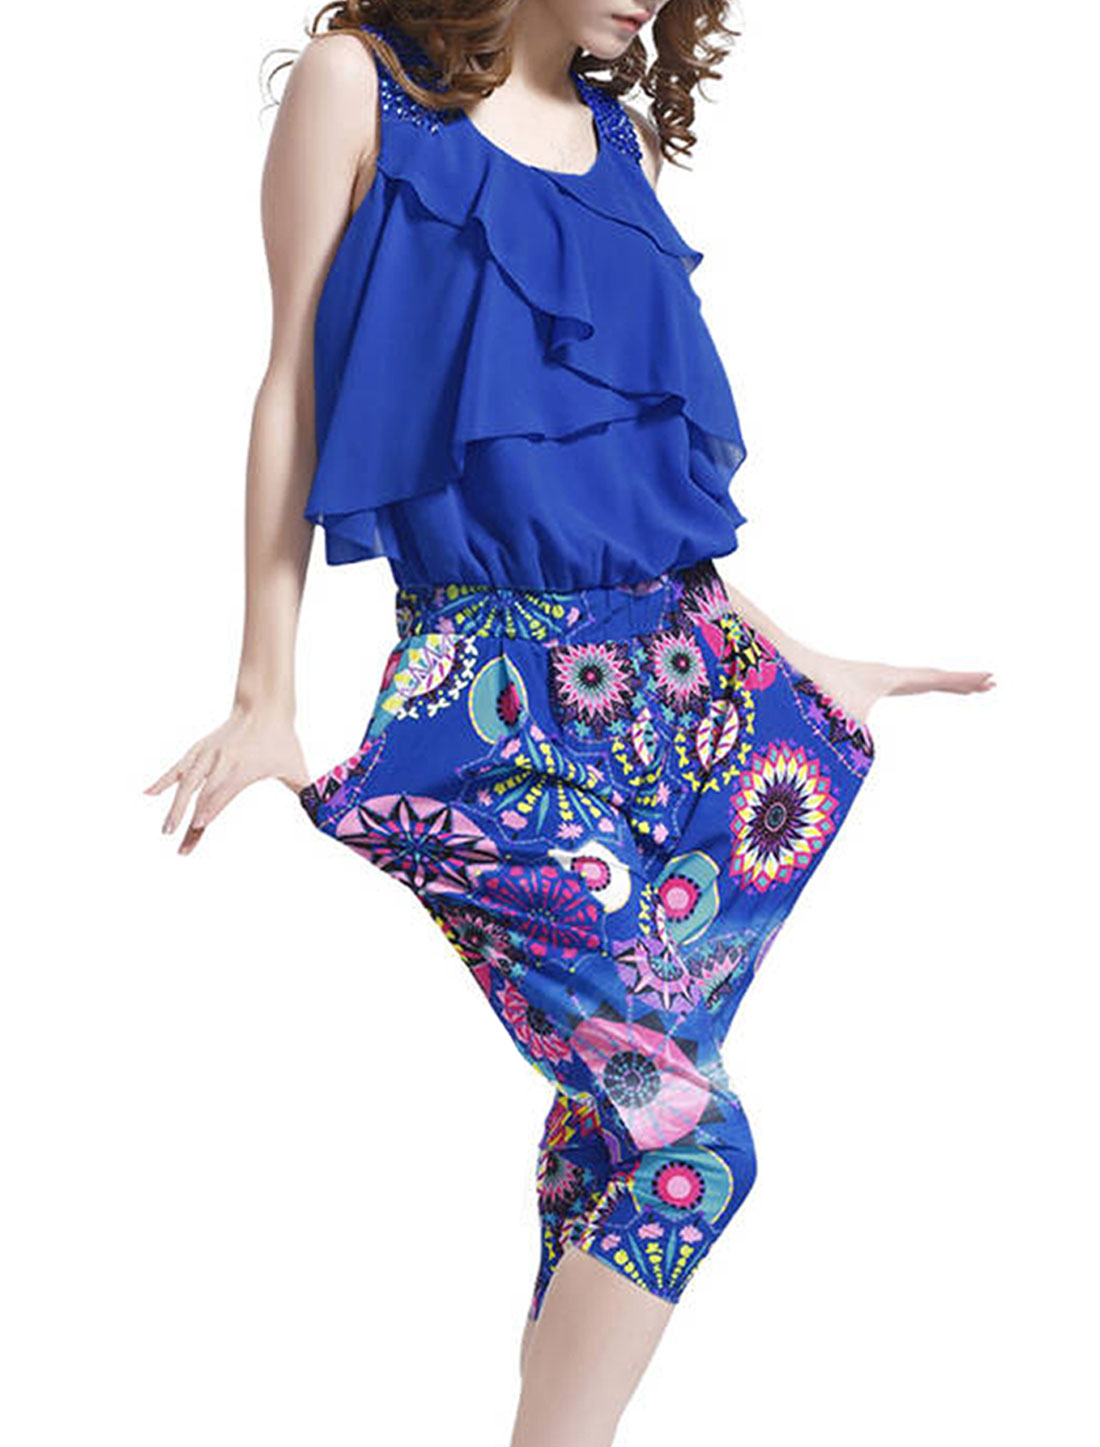 Women Fake Crystal Decor Shoulder Novelty Prints Royalblue Capris Jumpsuits S